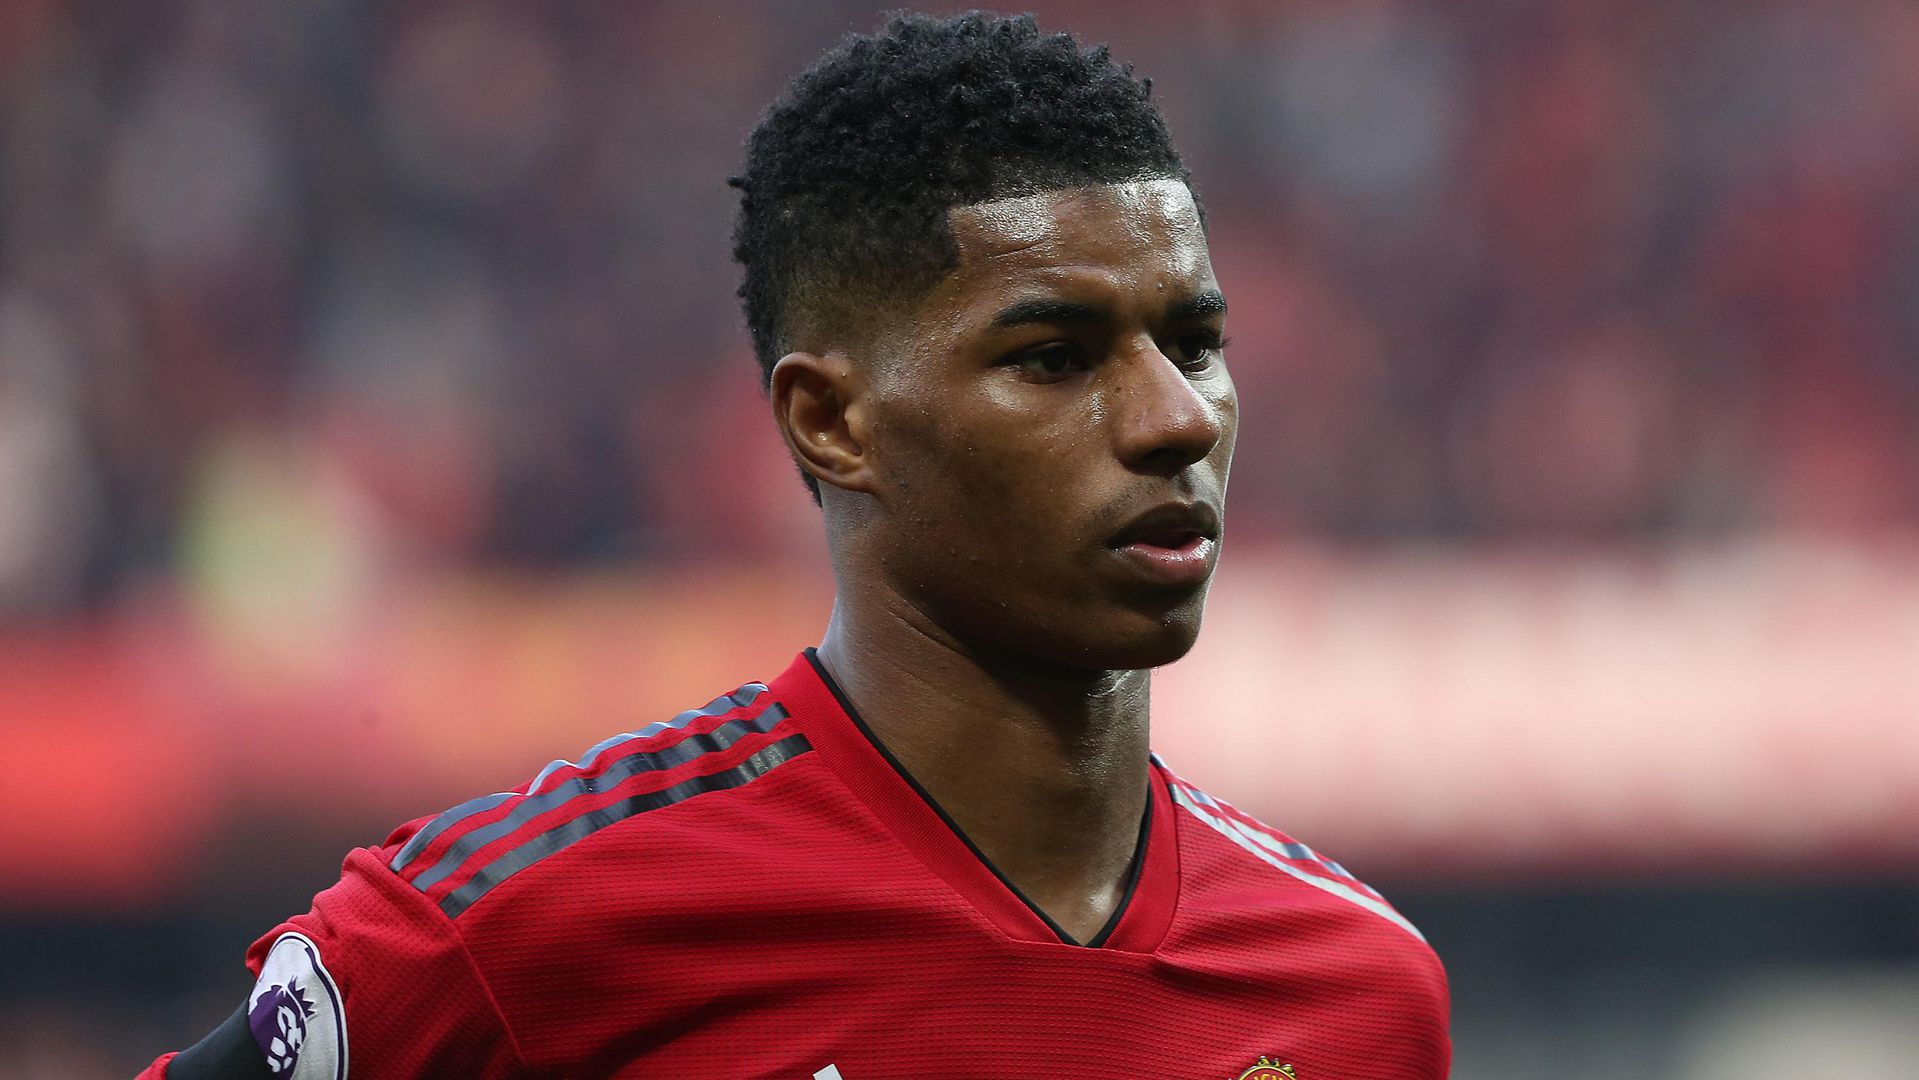 Marcus Rashford Out Of England Squad For Euro 2020 Qualifiers Manchester United